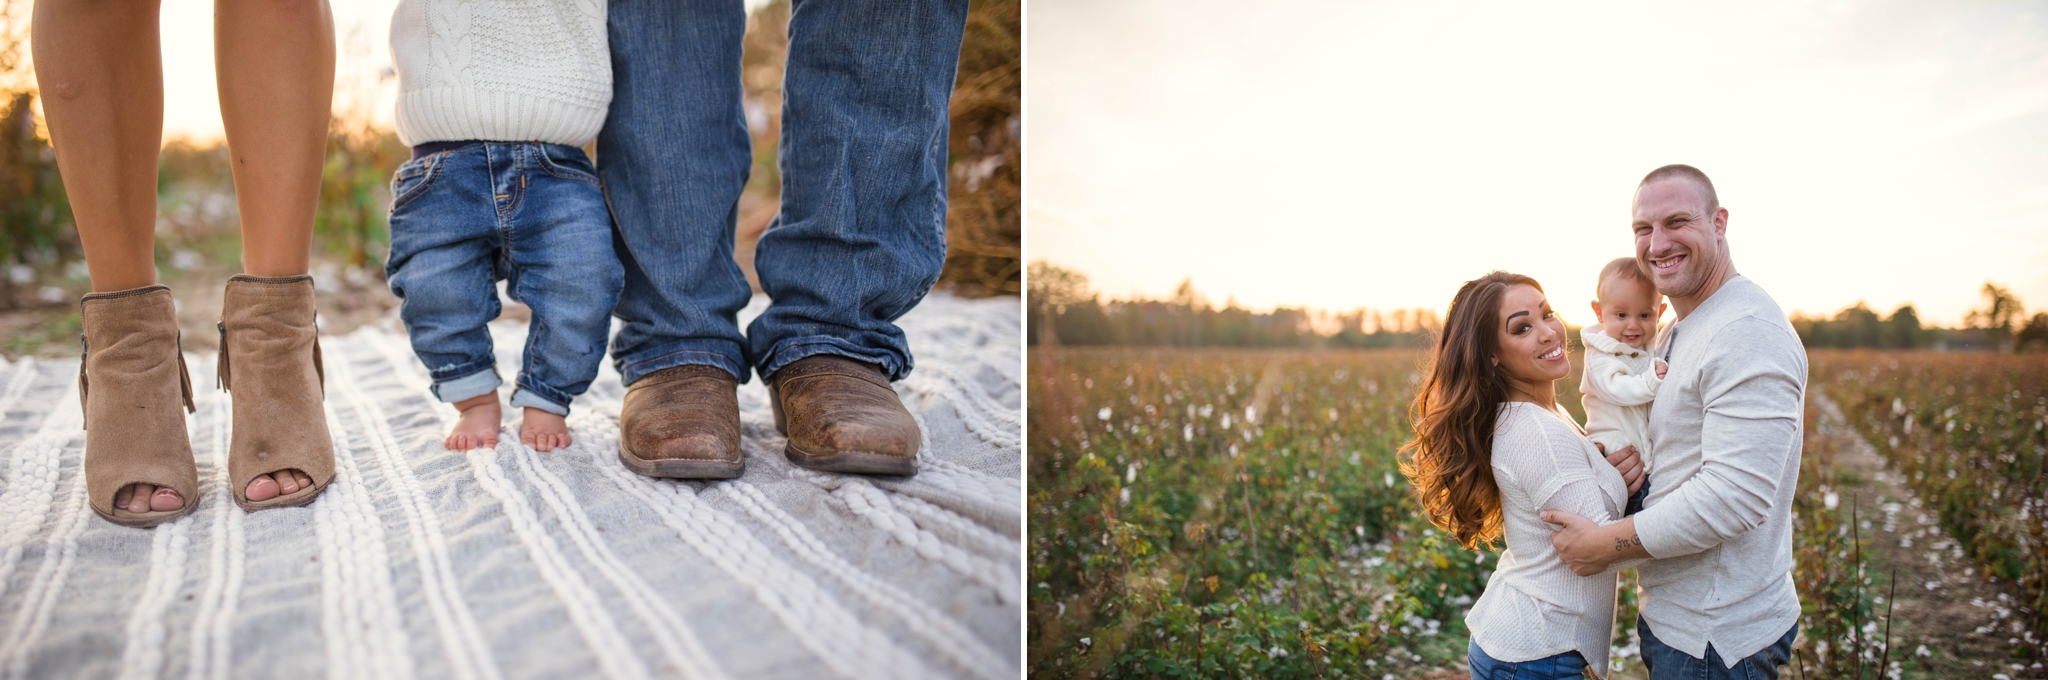 Family Photography in Fayetteville, North Carolina